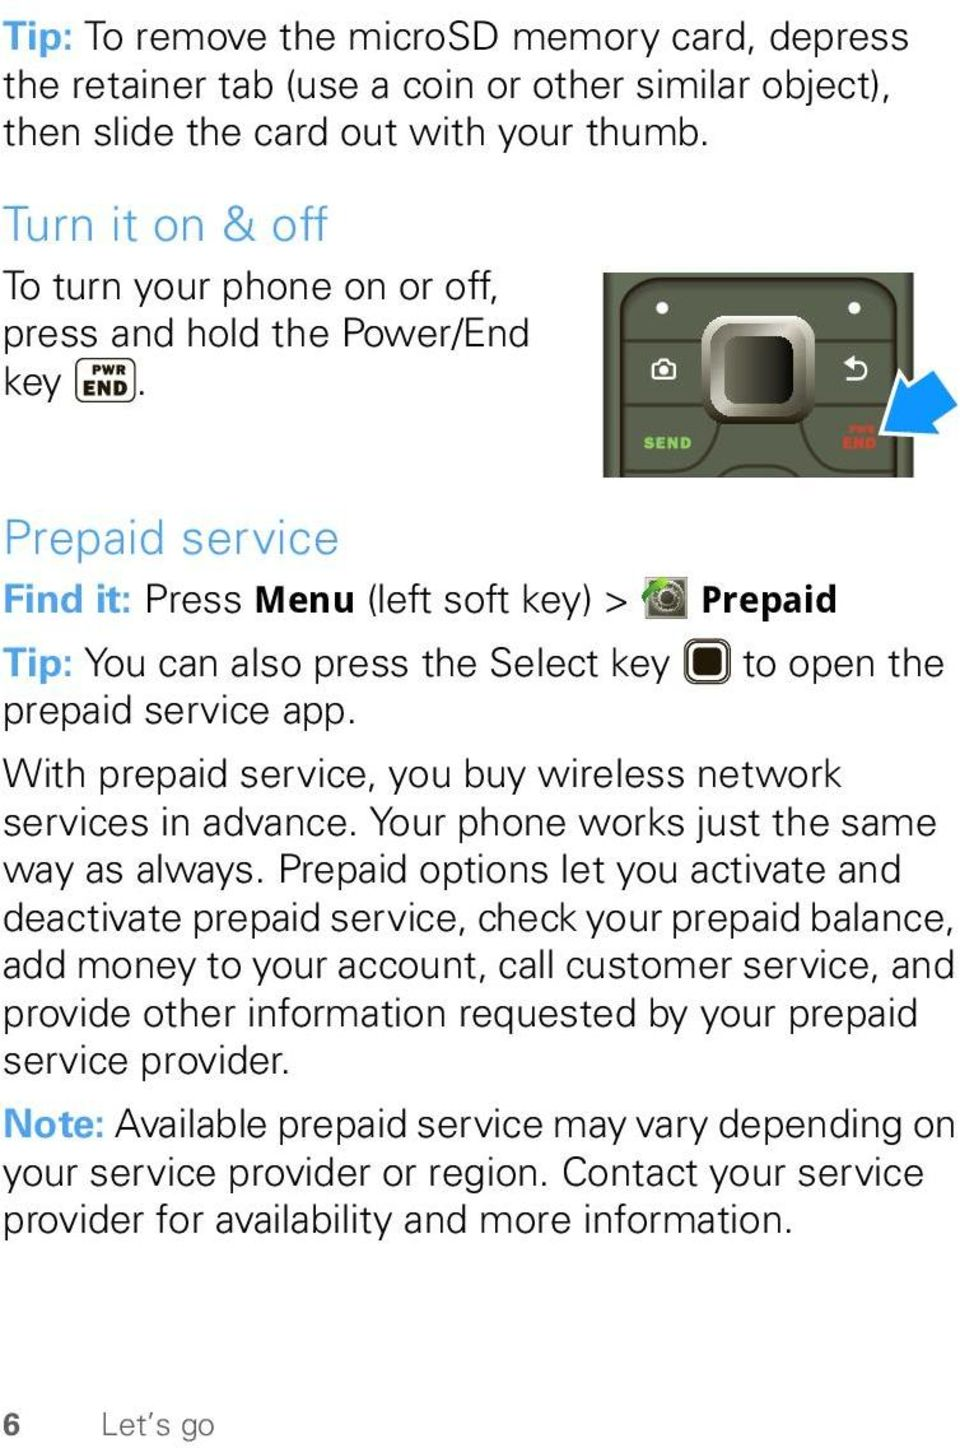 Prepaid service Find it: Press Menu (left soft key) > Prepaid Tip: You can also press the Select key to open the prepaid service app.